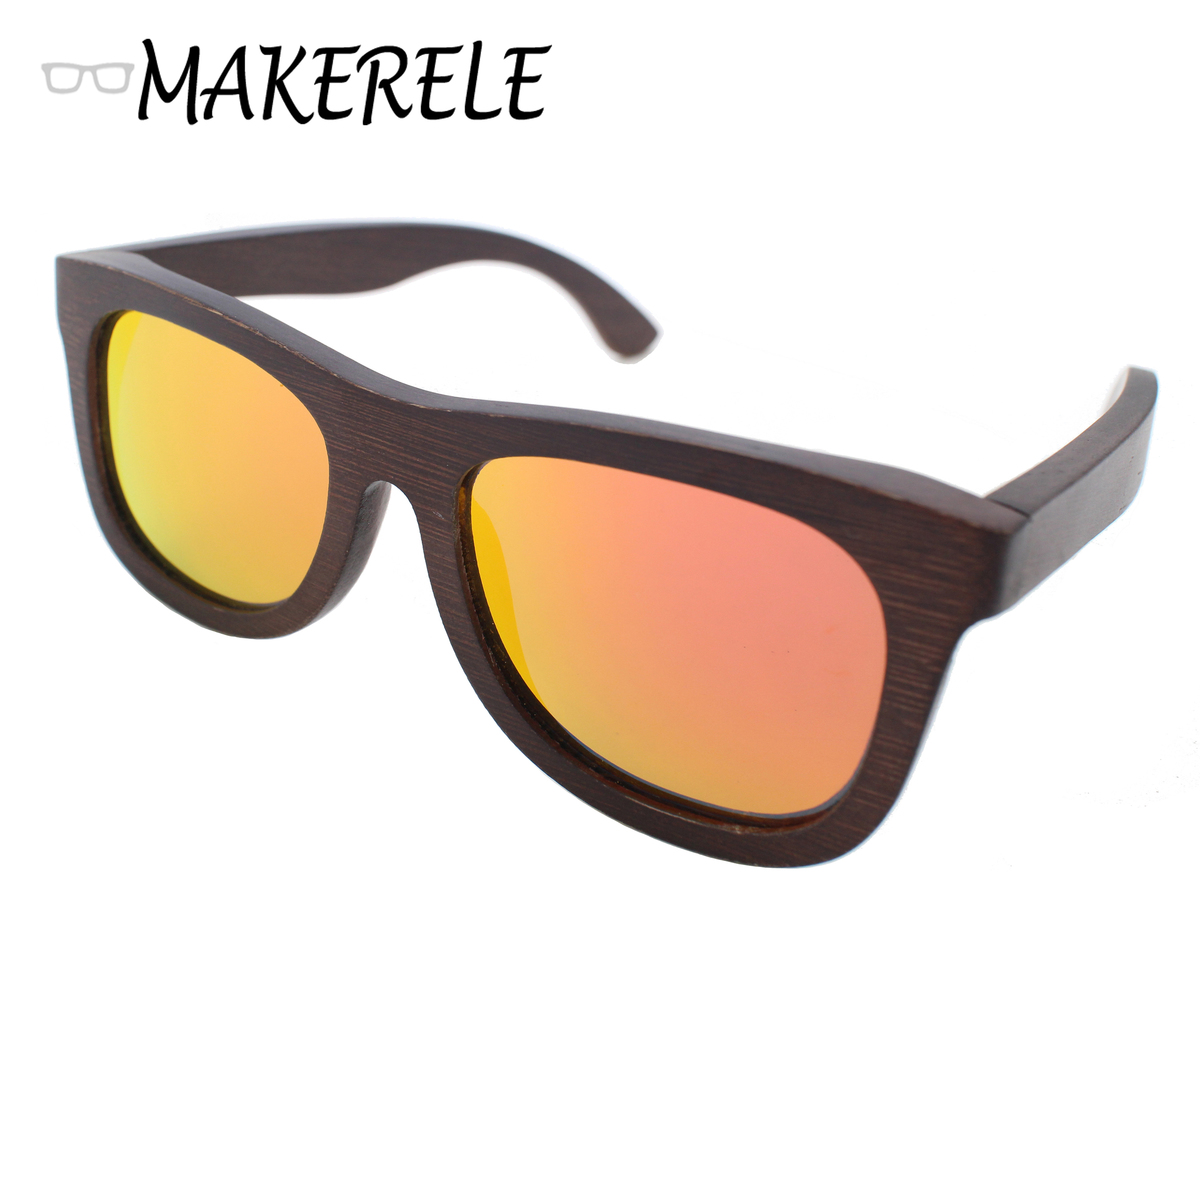 sunglasses online shopping offers  Popular Branded Sunglasses Online-Buy Cheap Branded Sunglasses ...